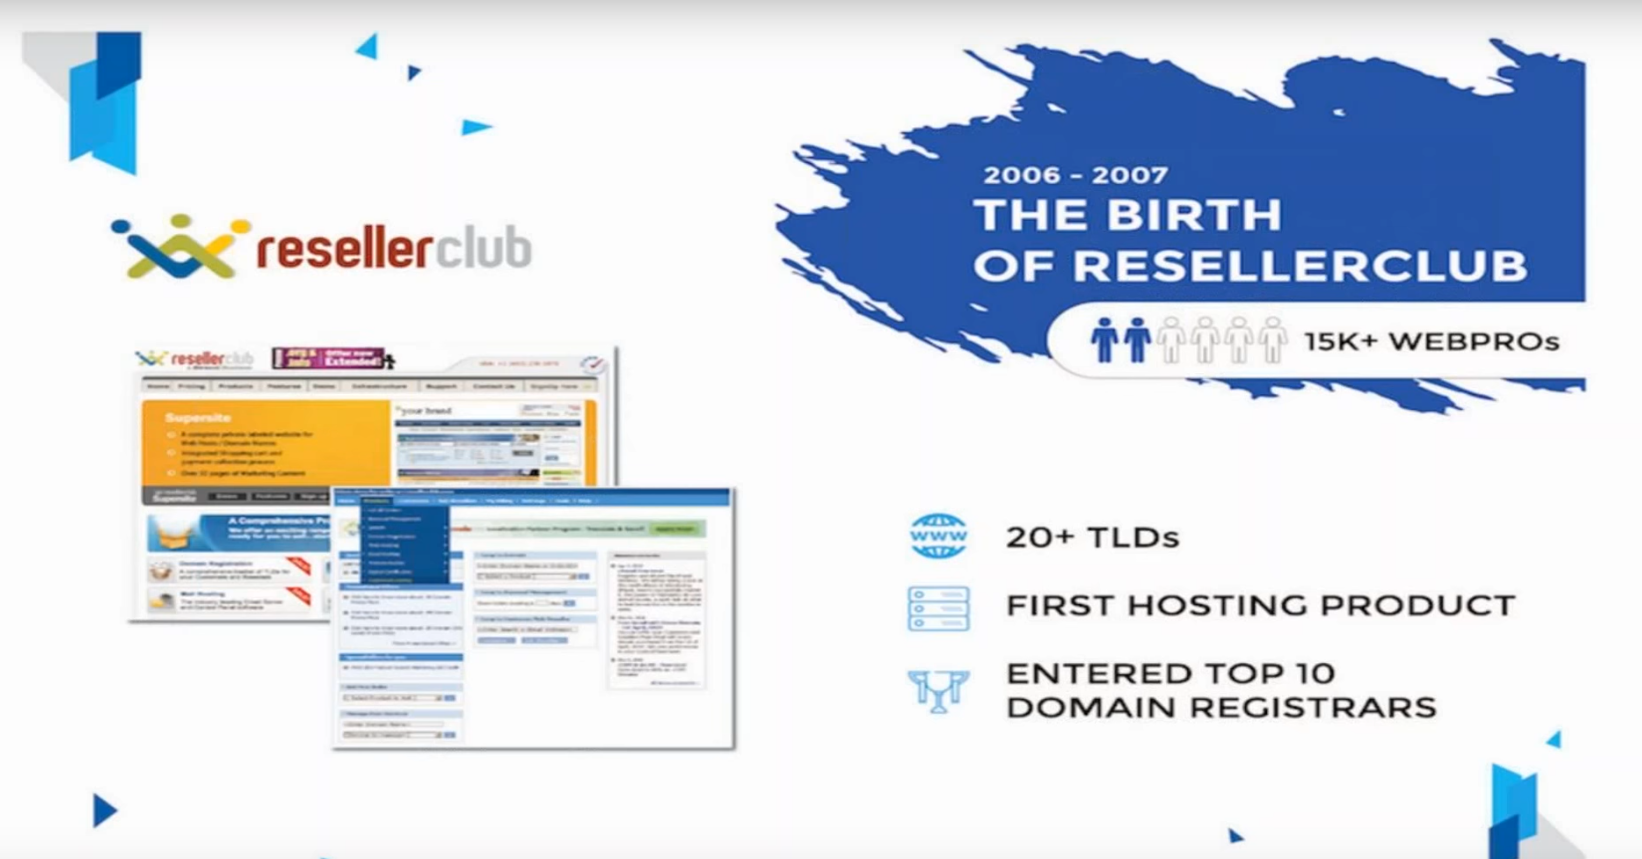 evolution of resellerclub shridhar webinar rc blog